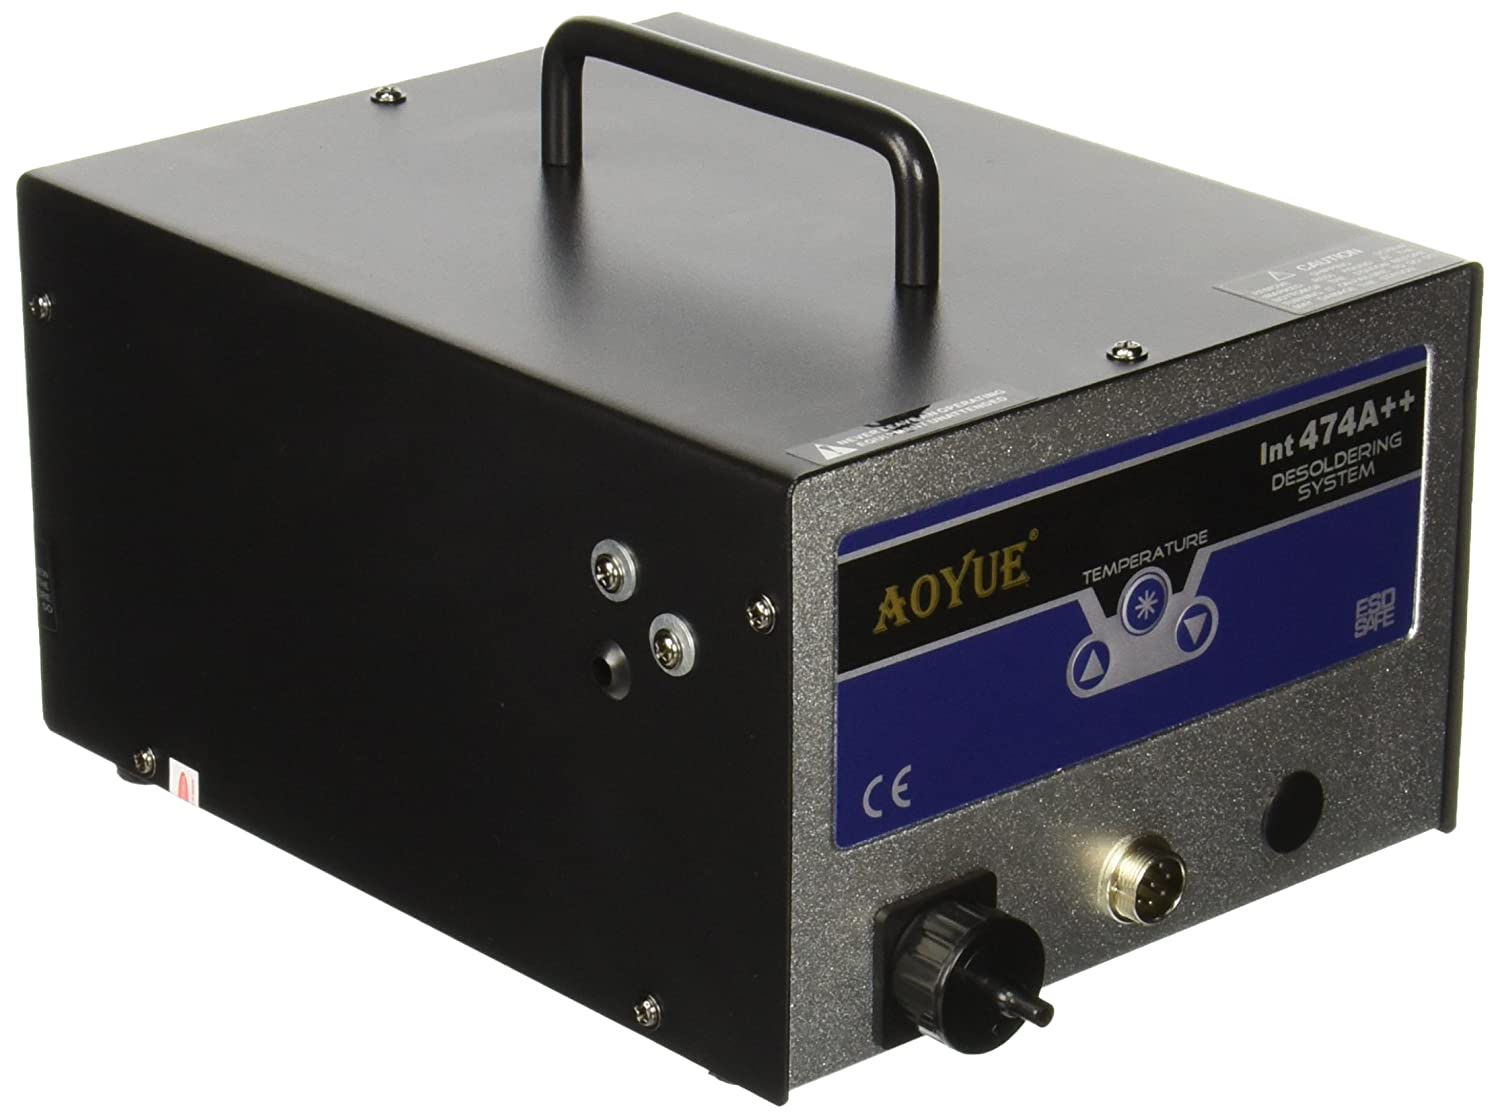 Aoyue 474A++ Digital Desoldering Station with Built-in Vacuum Pump